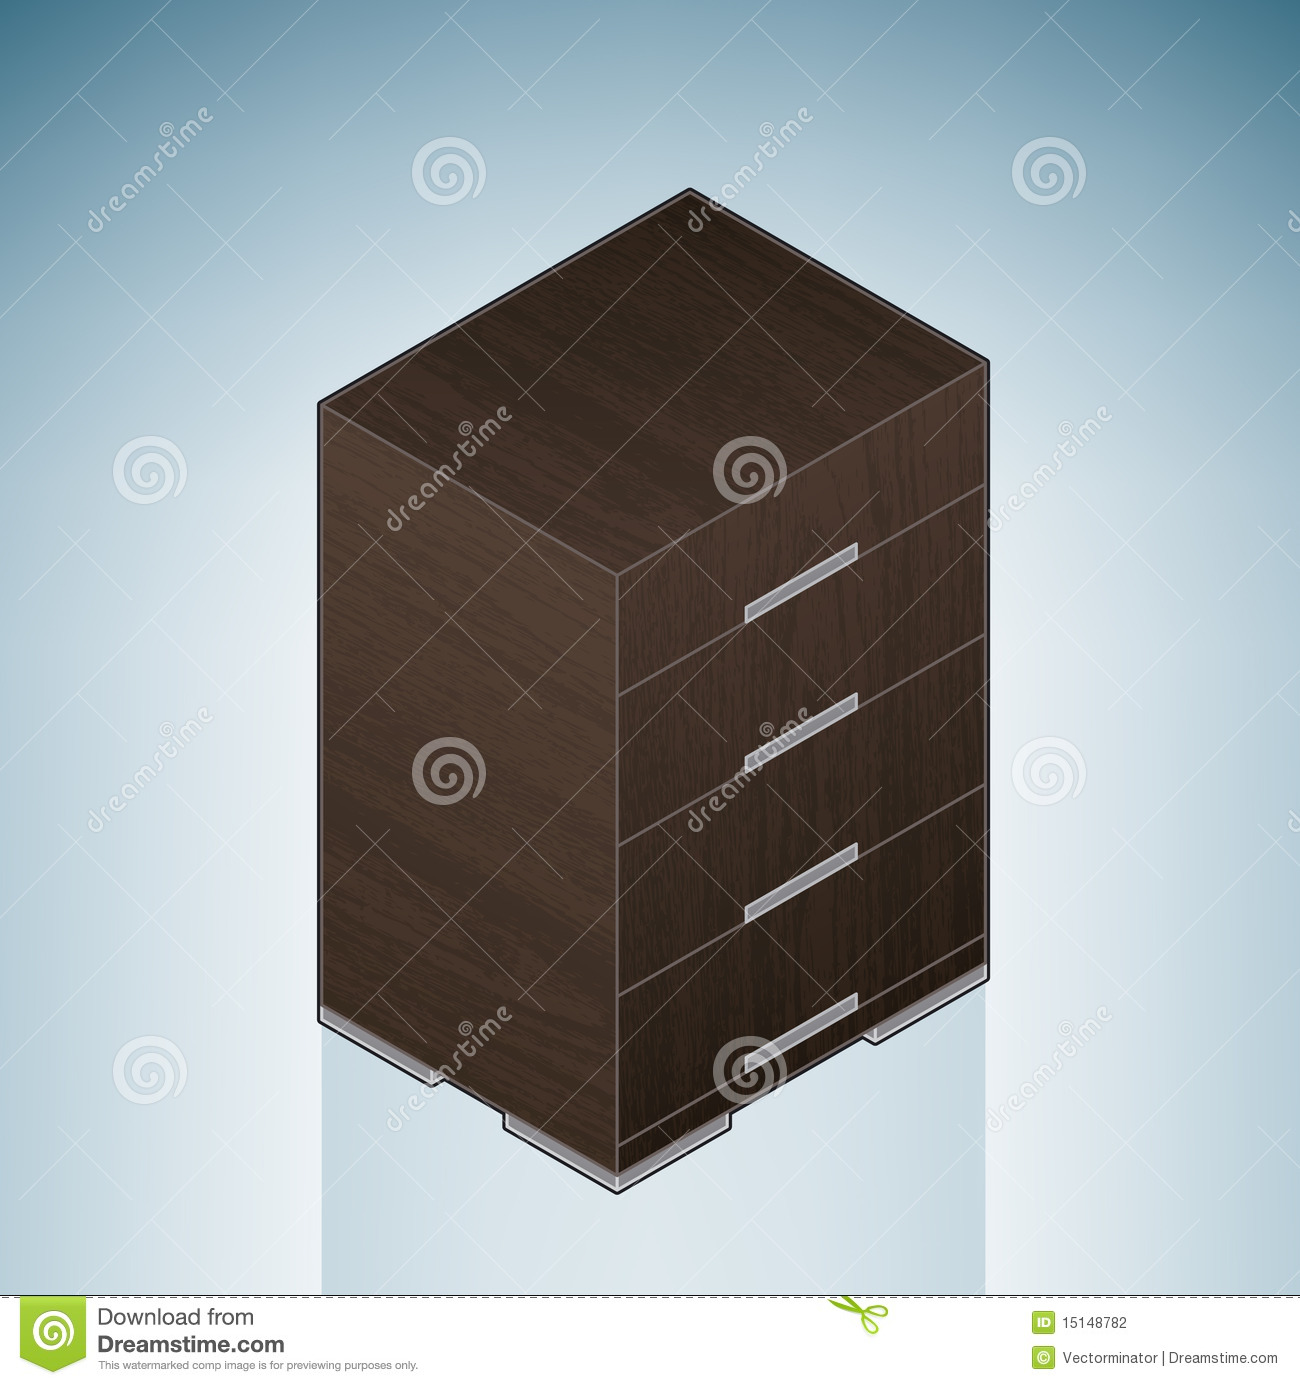 Furniture Bedroom Chest Of Drawers Part Of The 3D Isometric Icons